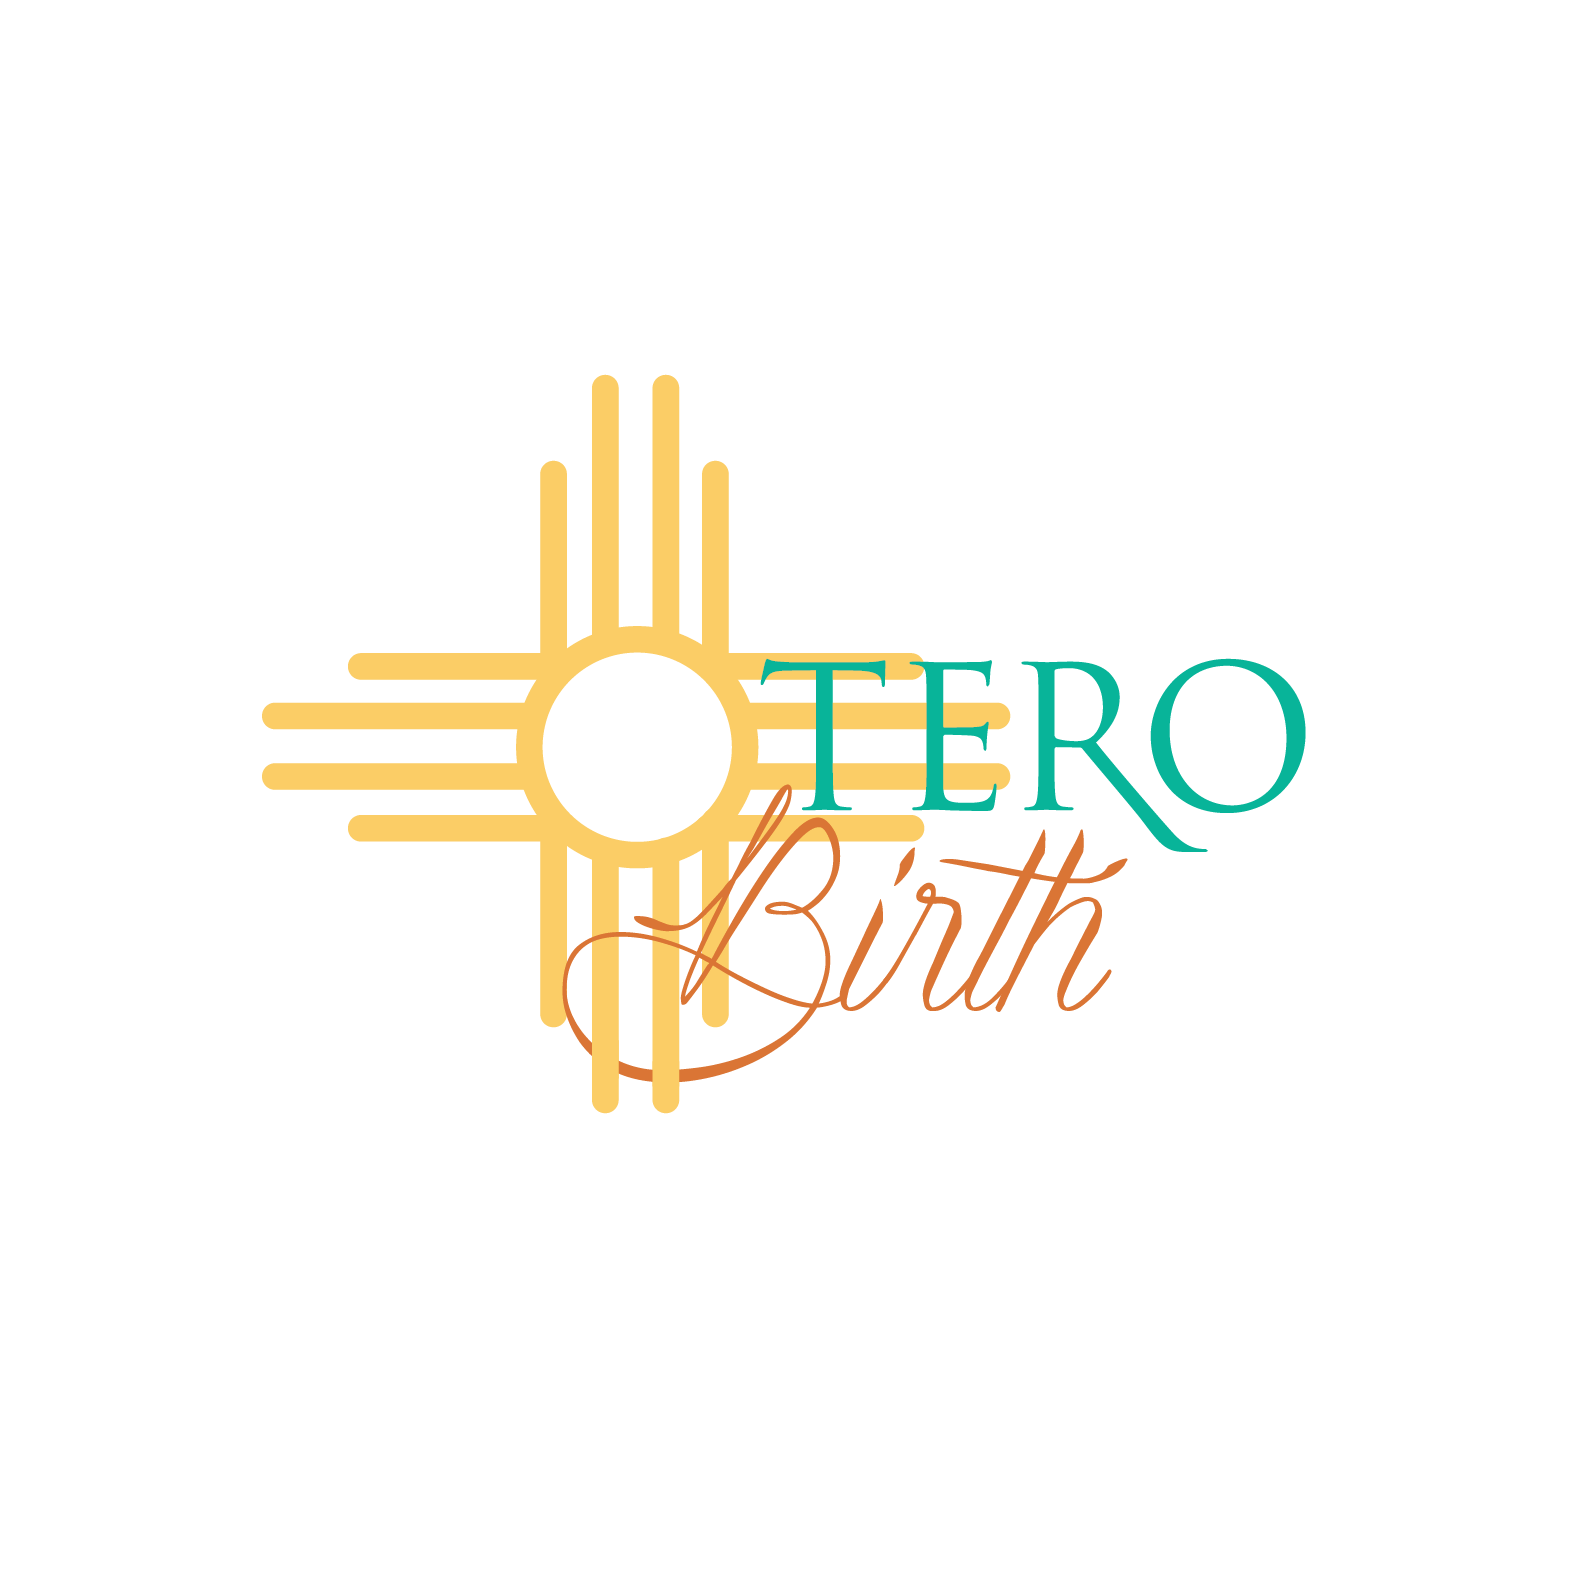 Otero birth_logo_v1-01.png